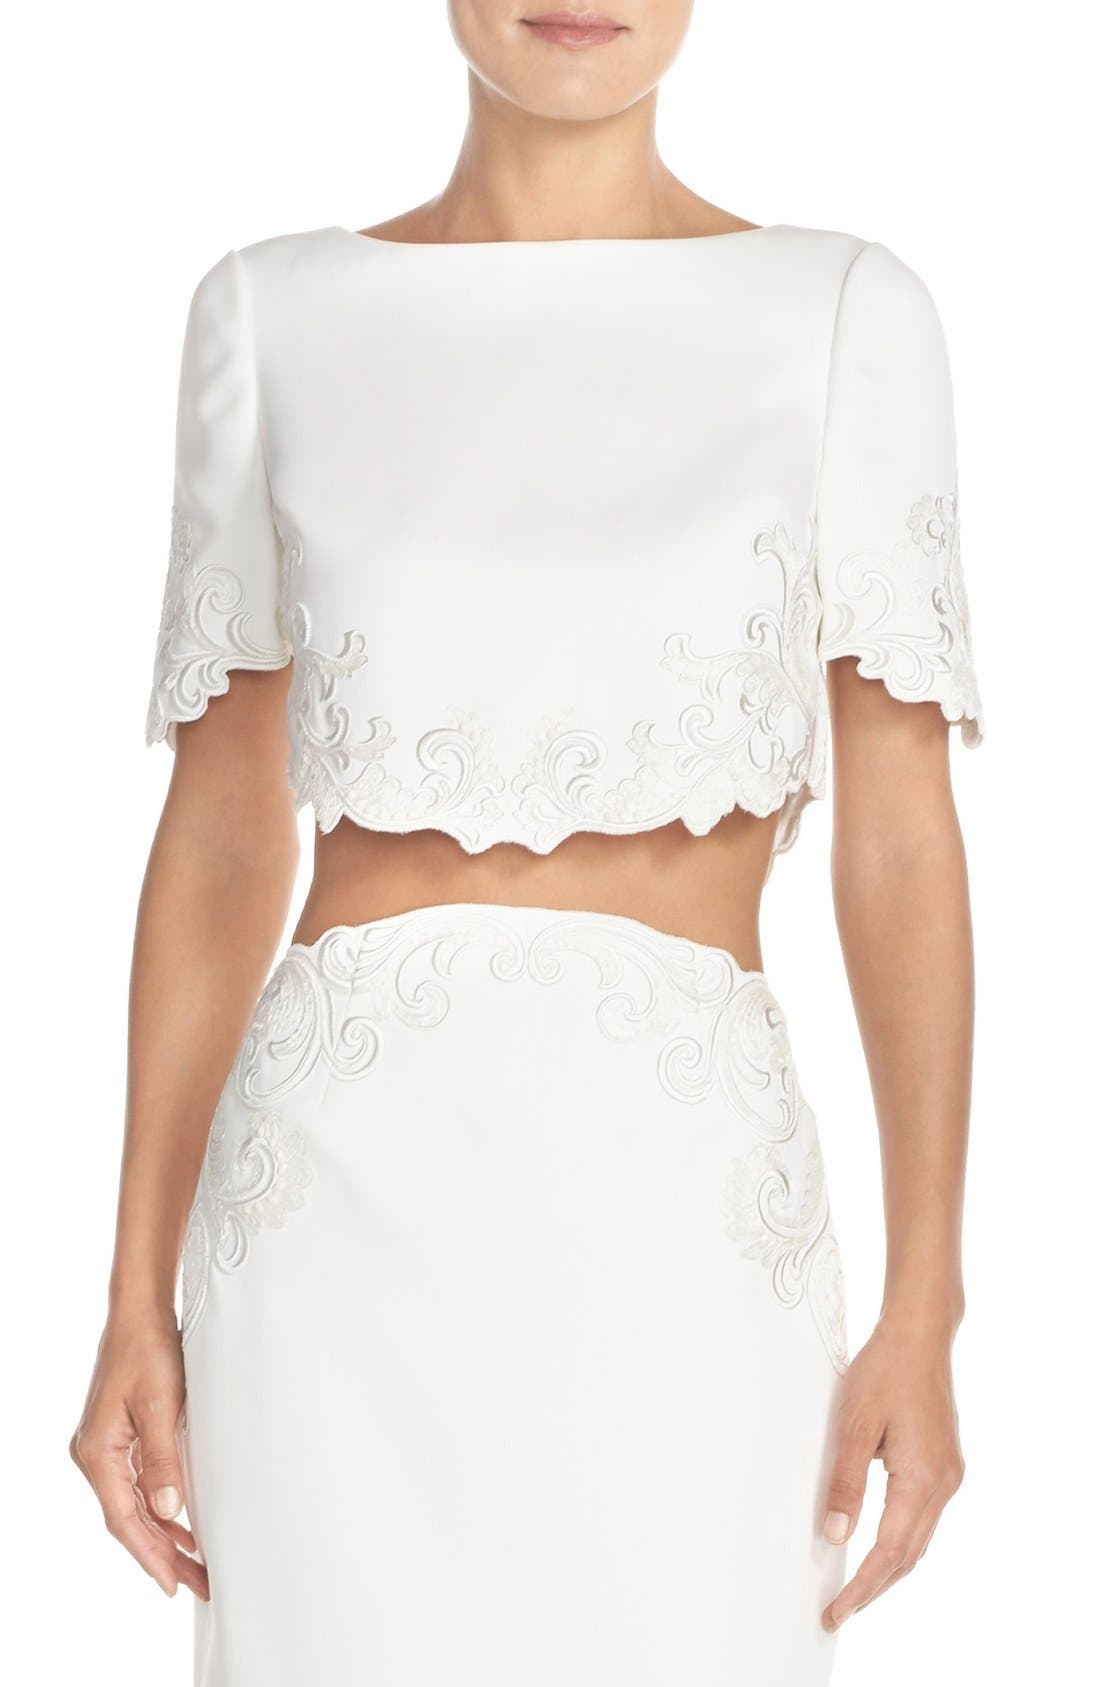 Alternate Image 1 Selected - Ted Baker London 'Capris' Embroidered Crop Top